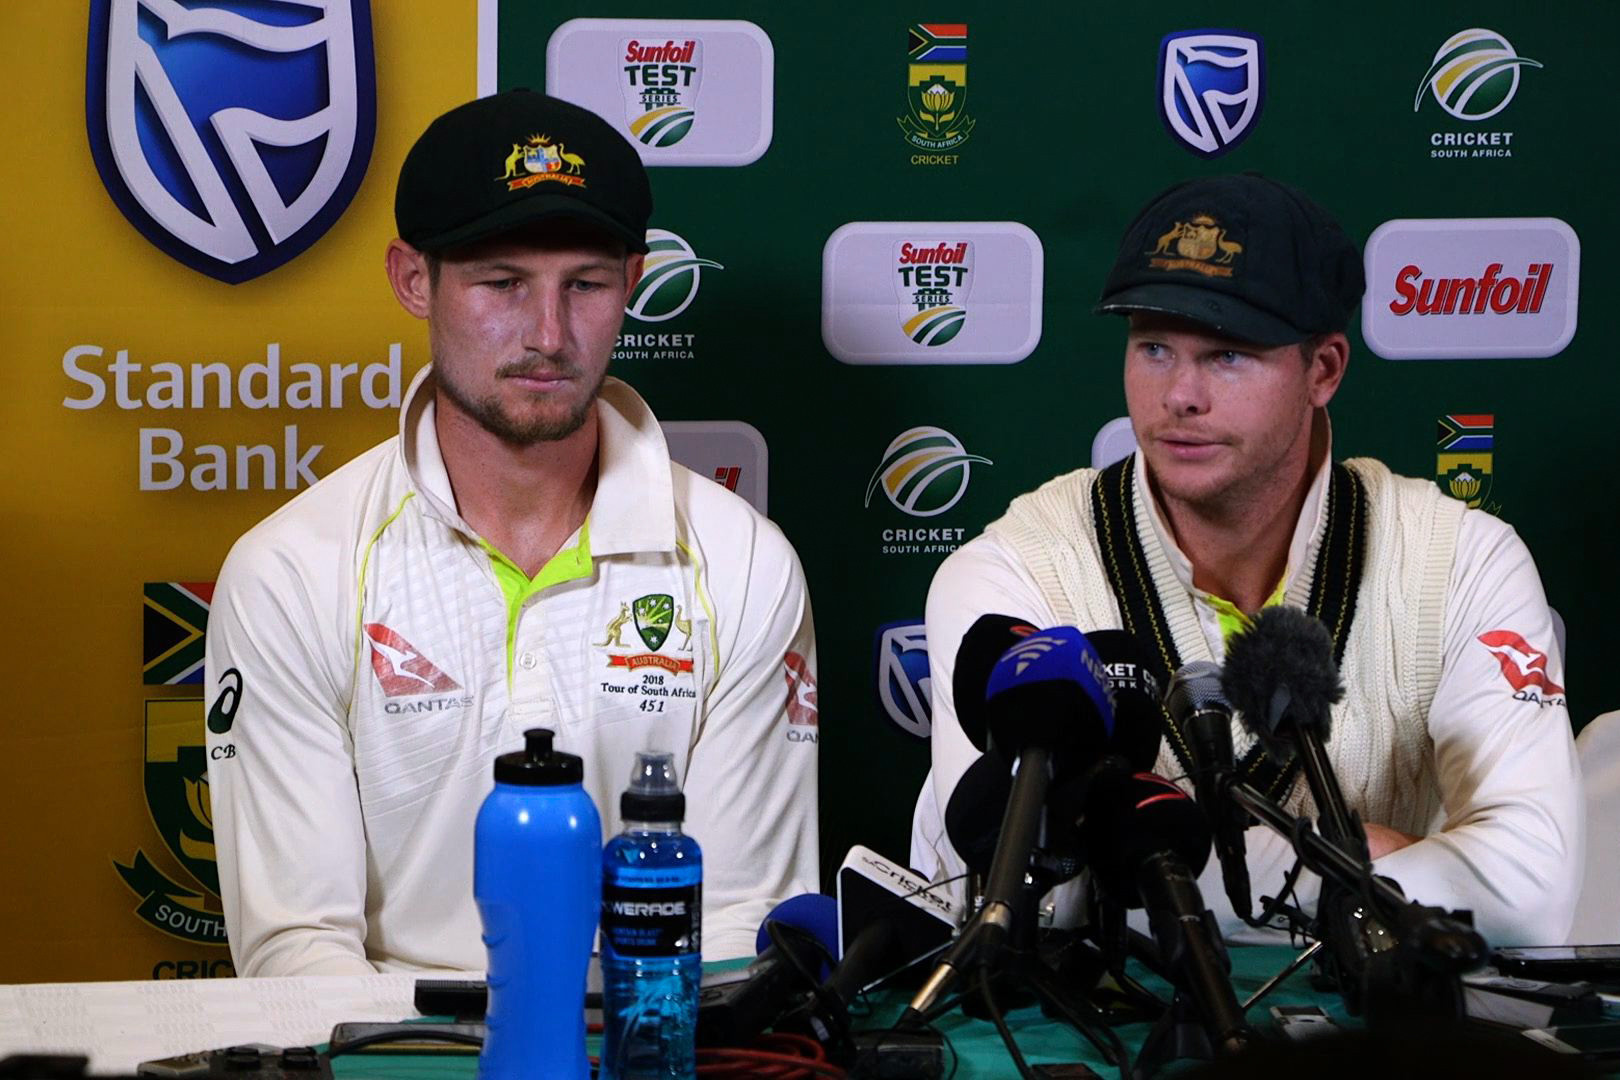 Steve Smith, left, and Cameron Bancroft admitted to ball-tampering after the match ©Getty Images